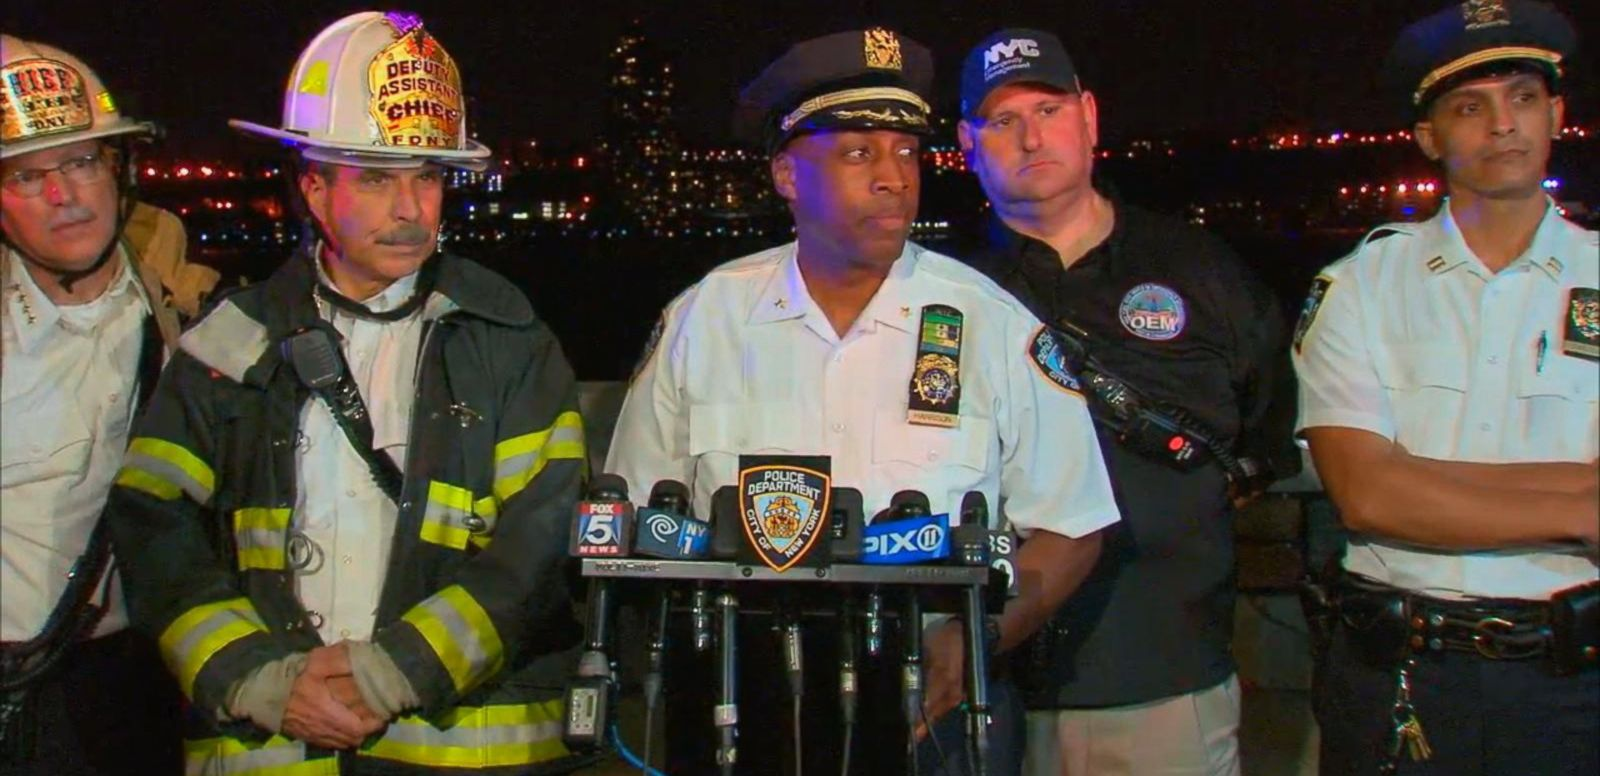 VIDEO: Officials Give Update on World War II-Era Plane Crash in the Hudson River